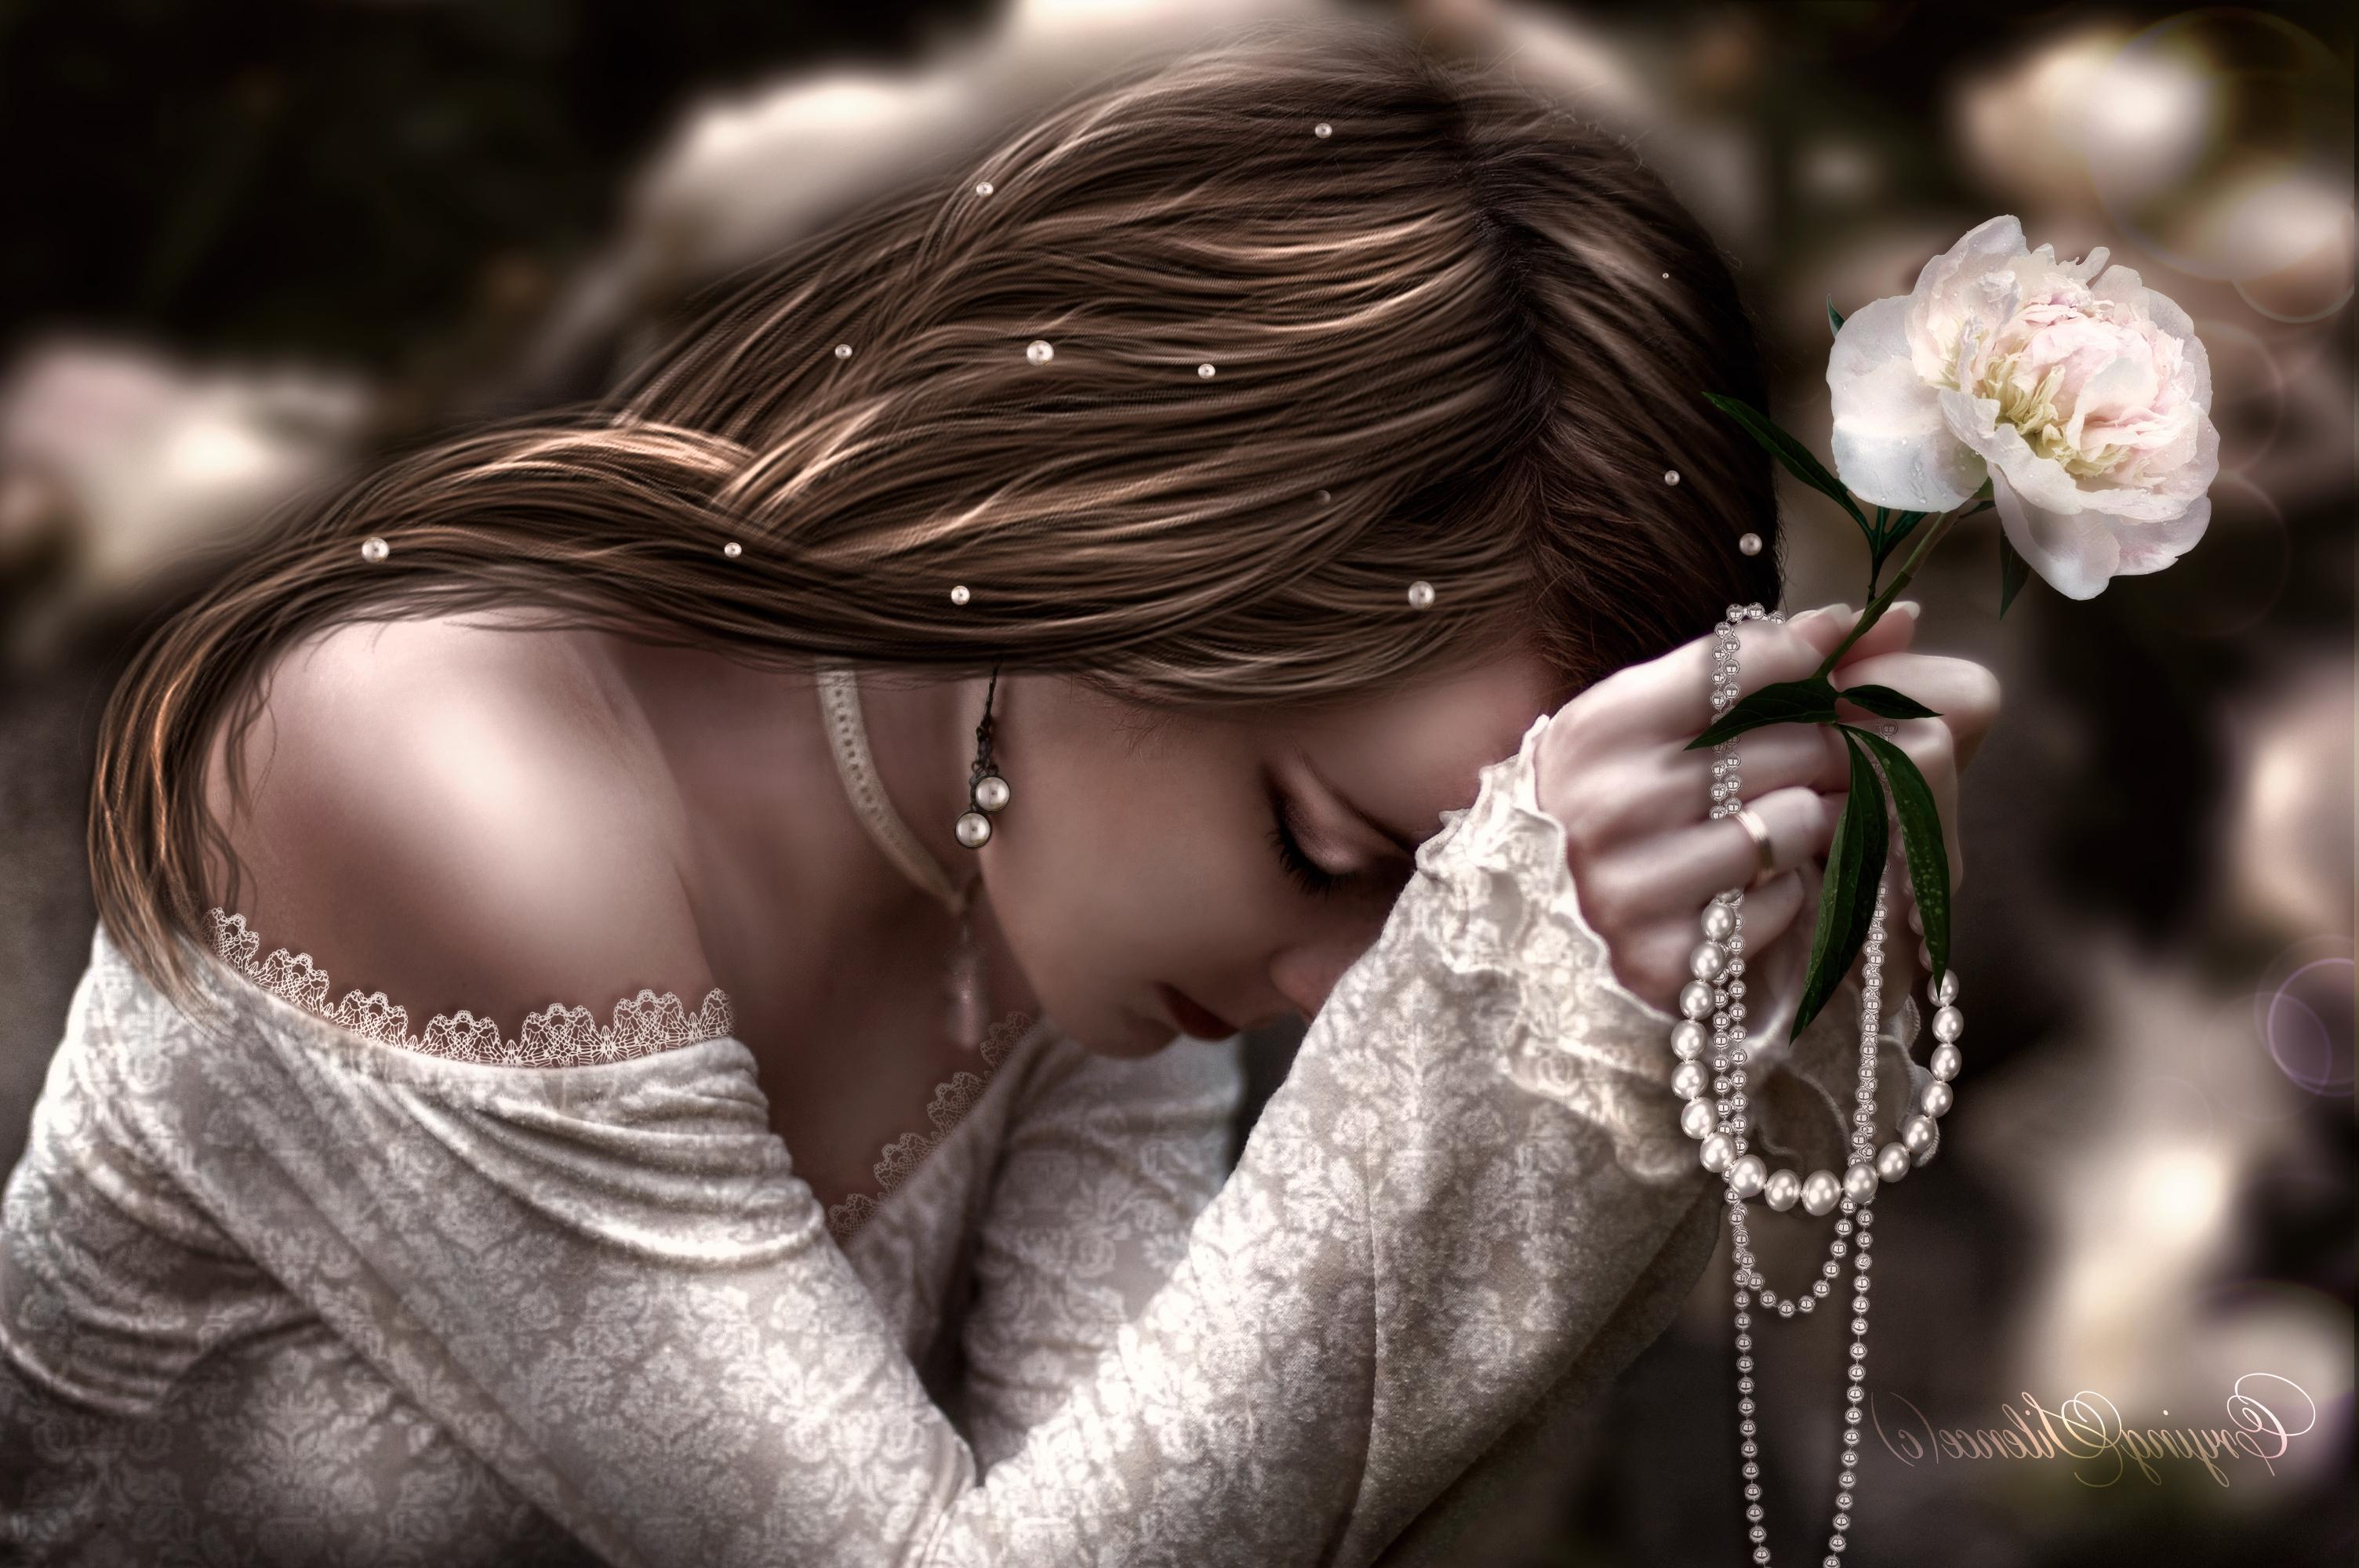 Sad Beautiful Lady Wallpapers HD / Desktop and Mobile Backgrounds